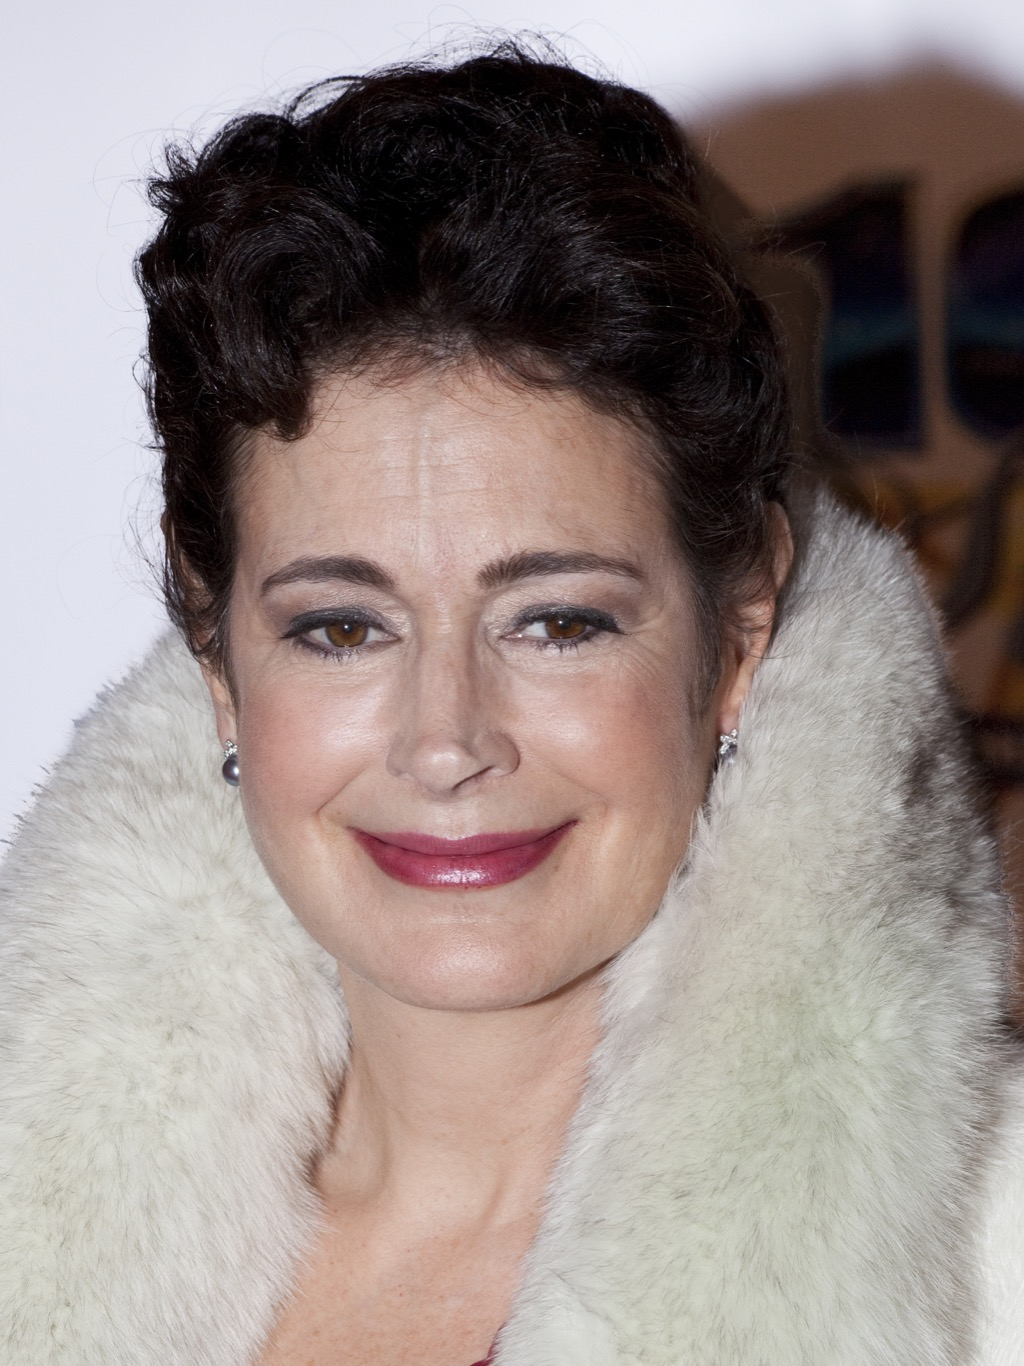 sean young celebrities turning 60